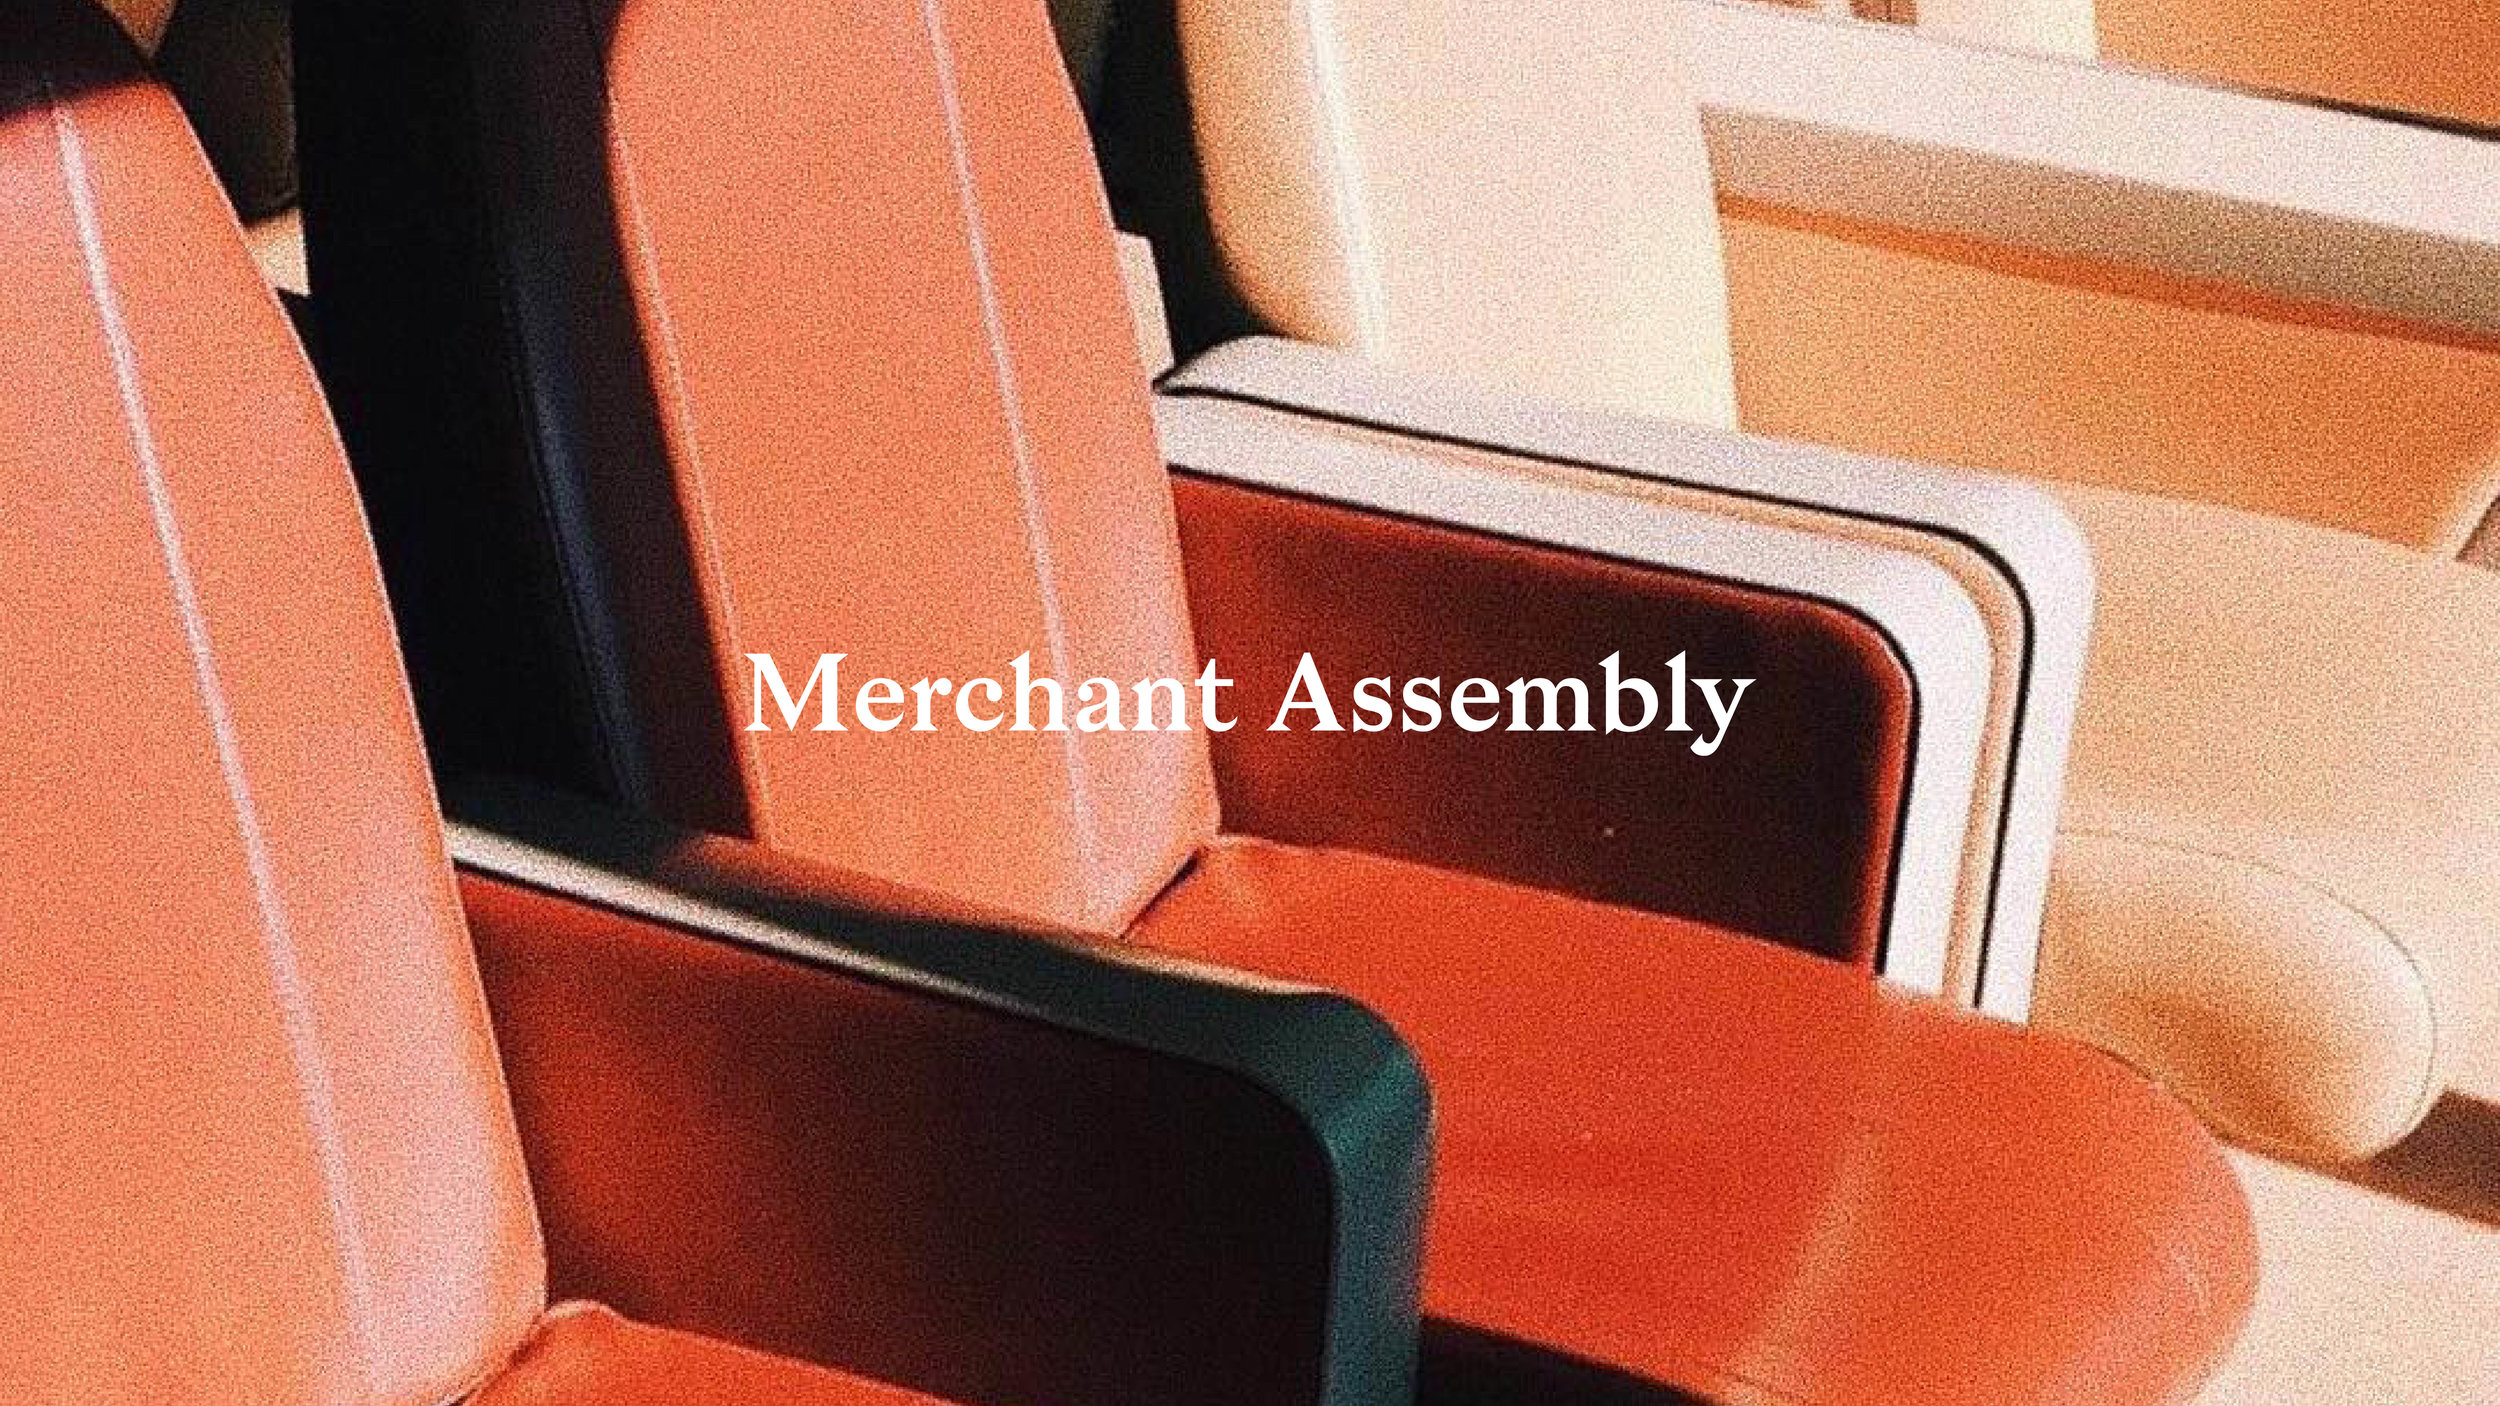 TheMerchantAssembly copy.jpg